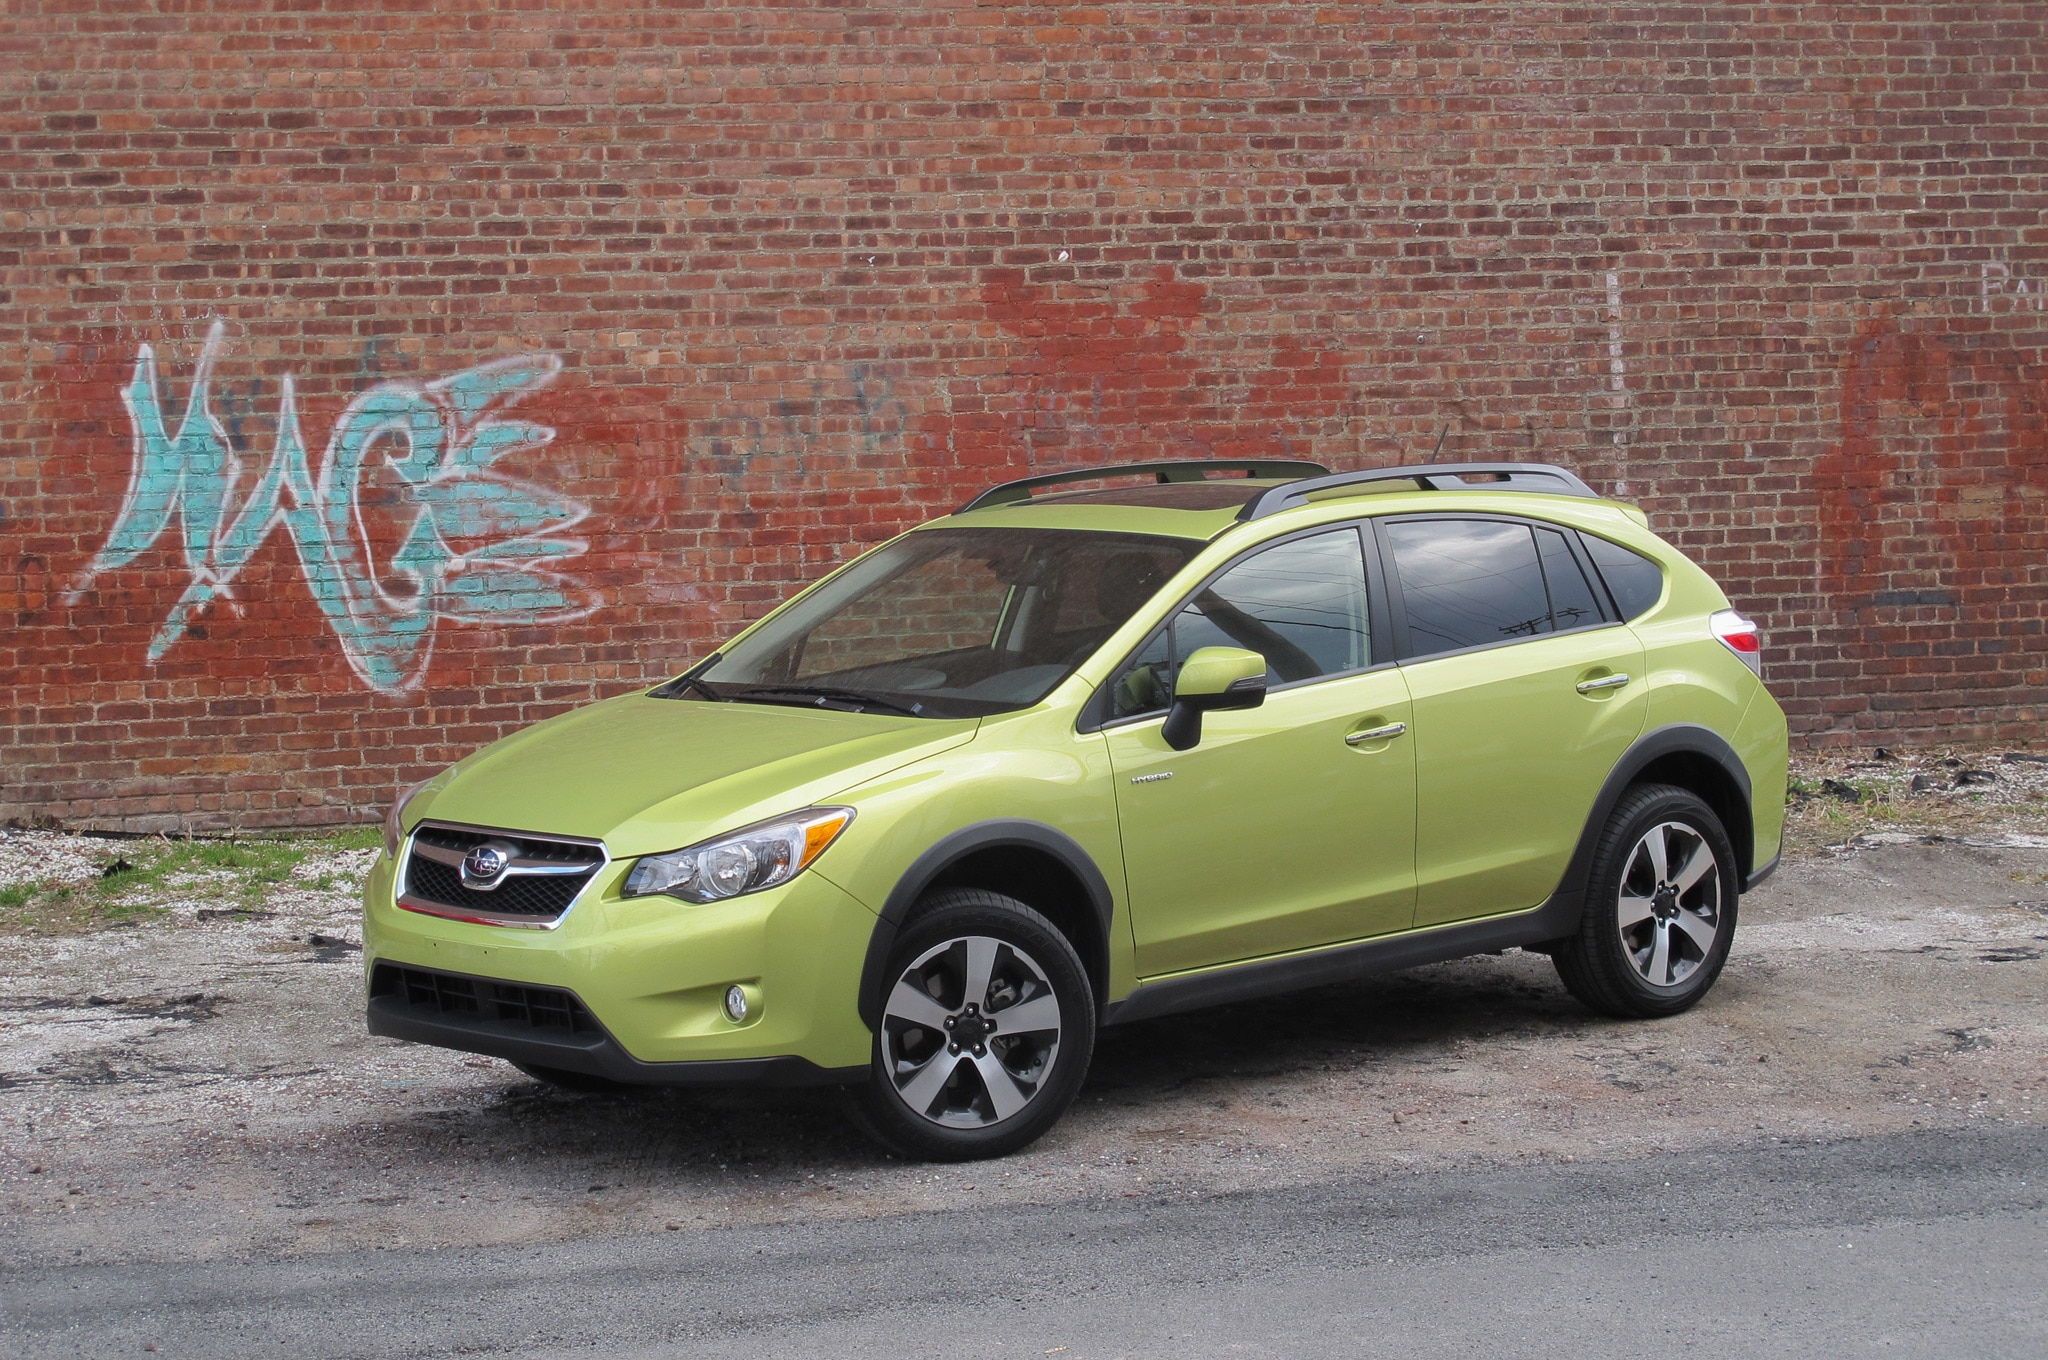 2014 Subaru XV Crosstrek Hybrid Front Side View